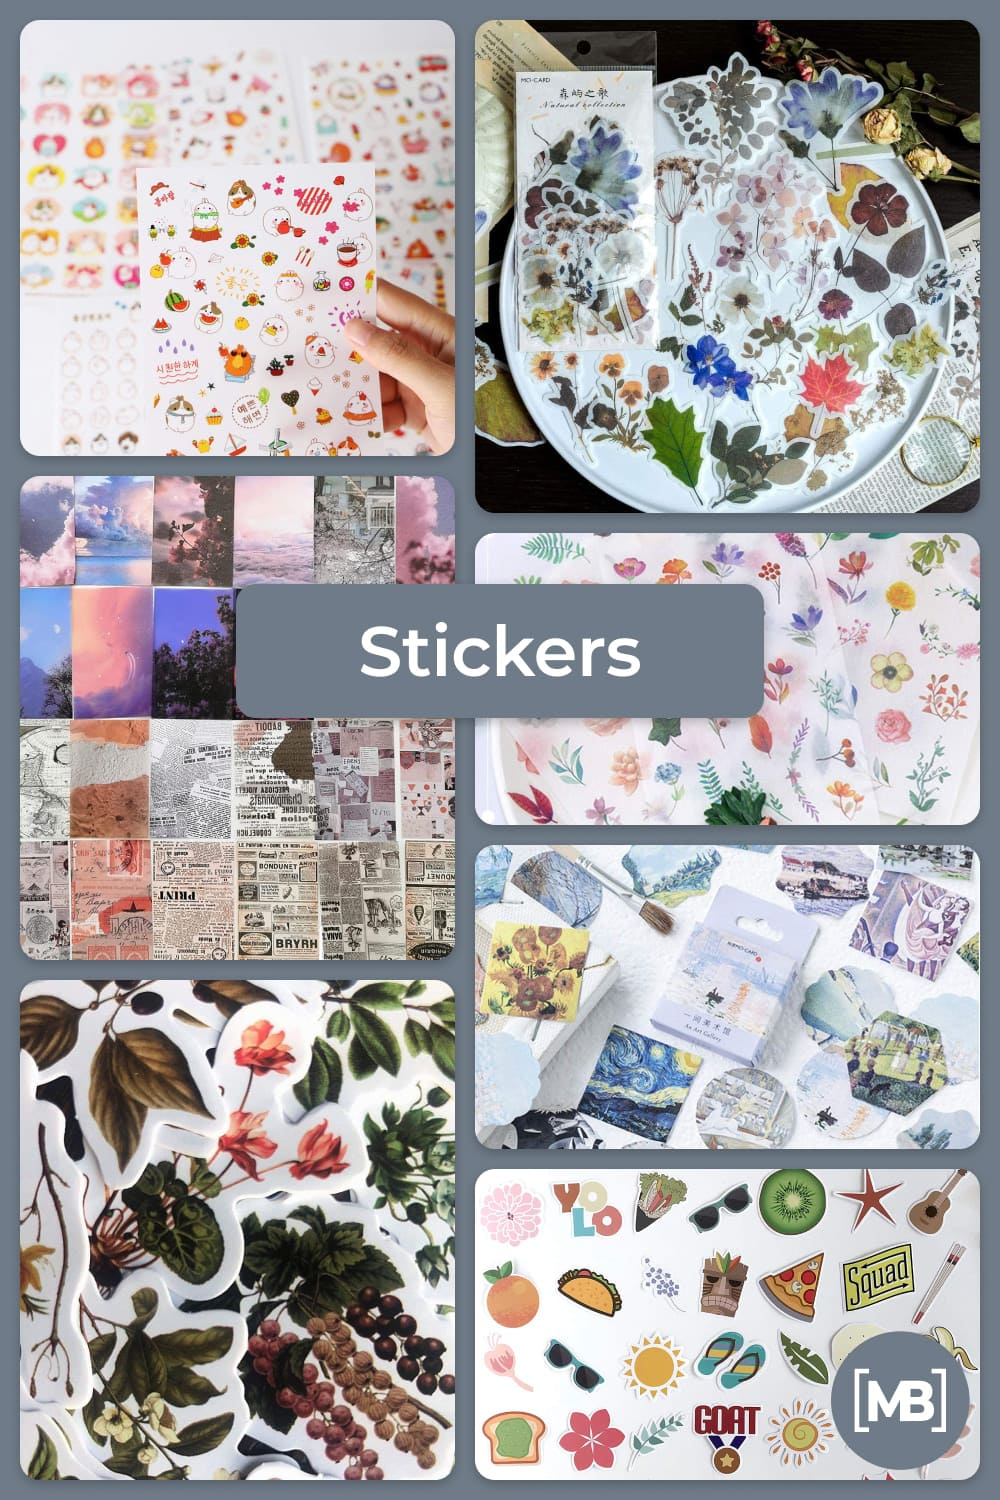 Stickers is a modern gift for hipster.